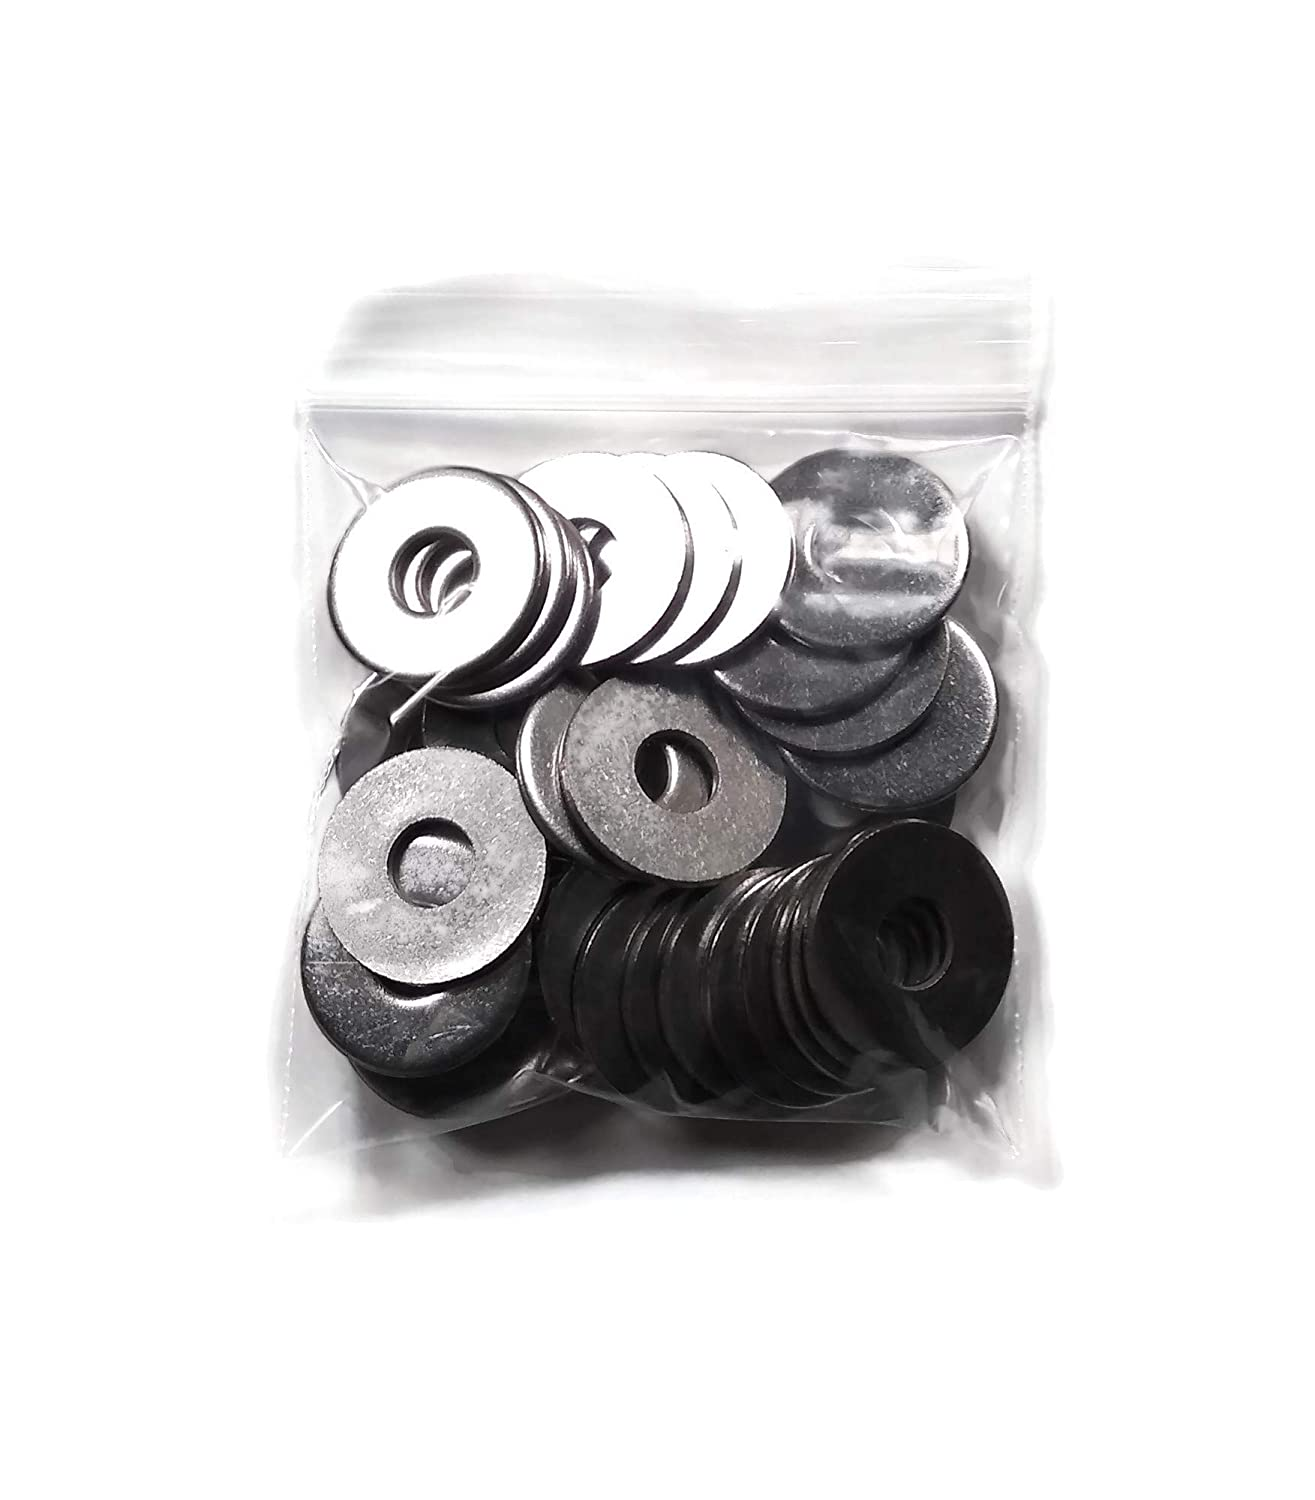 30pcs M8 304 Stainless Steel Flat Plain Washer Spacer Silver Tone